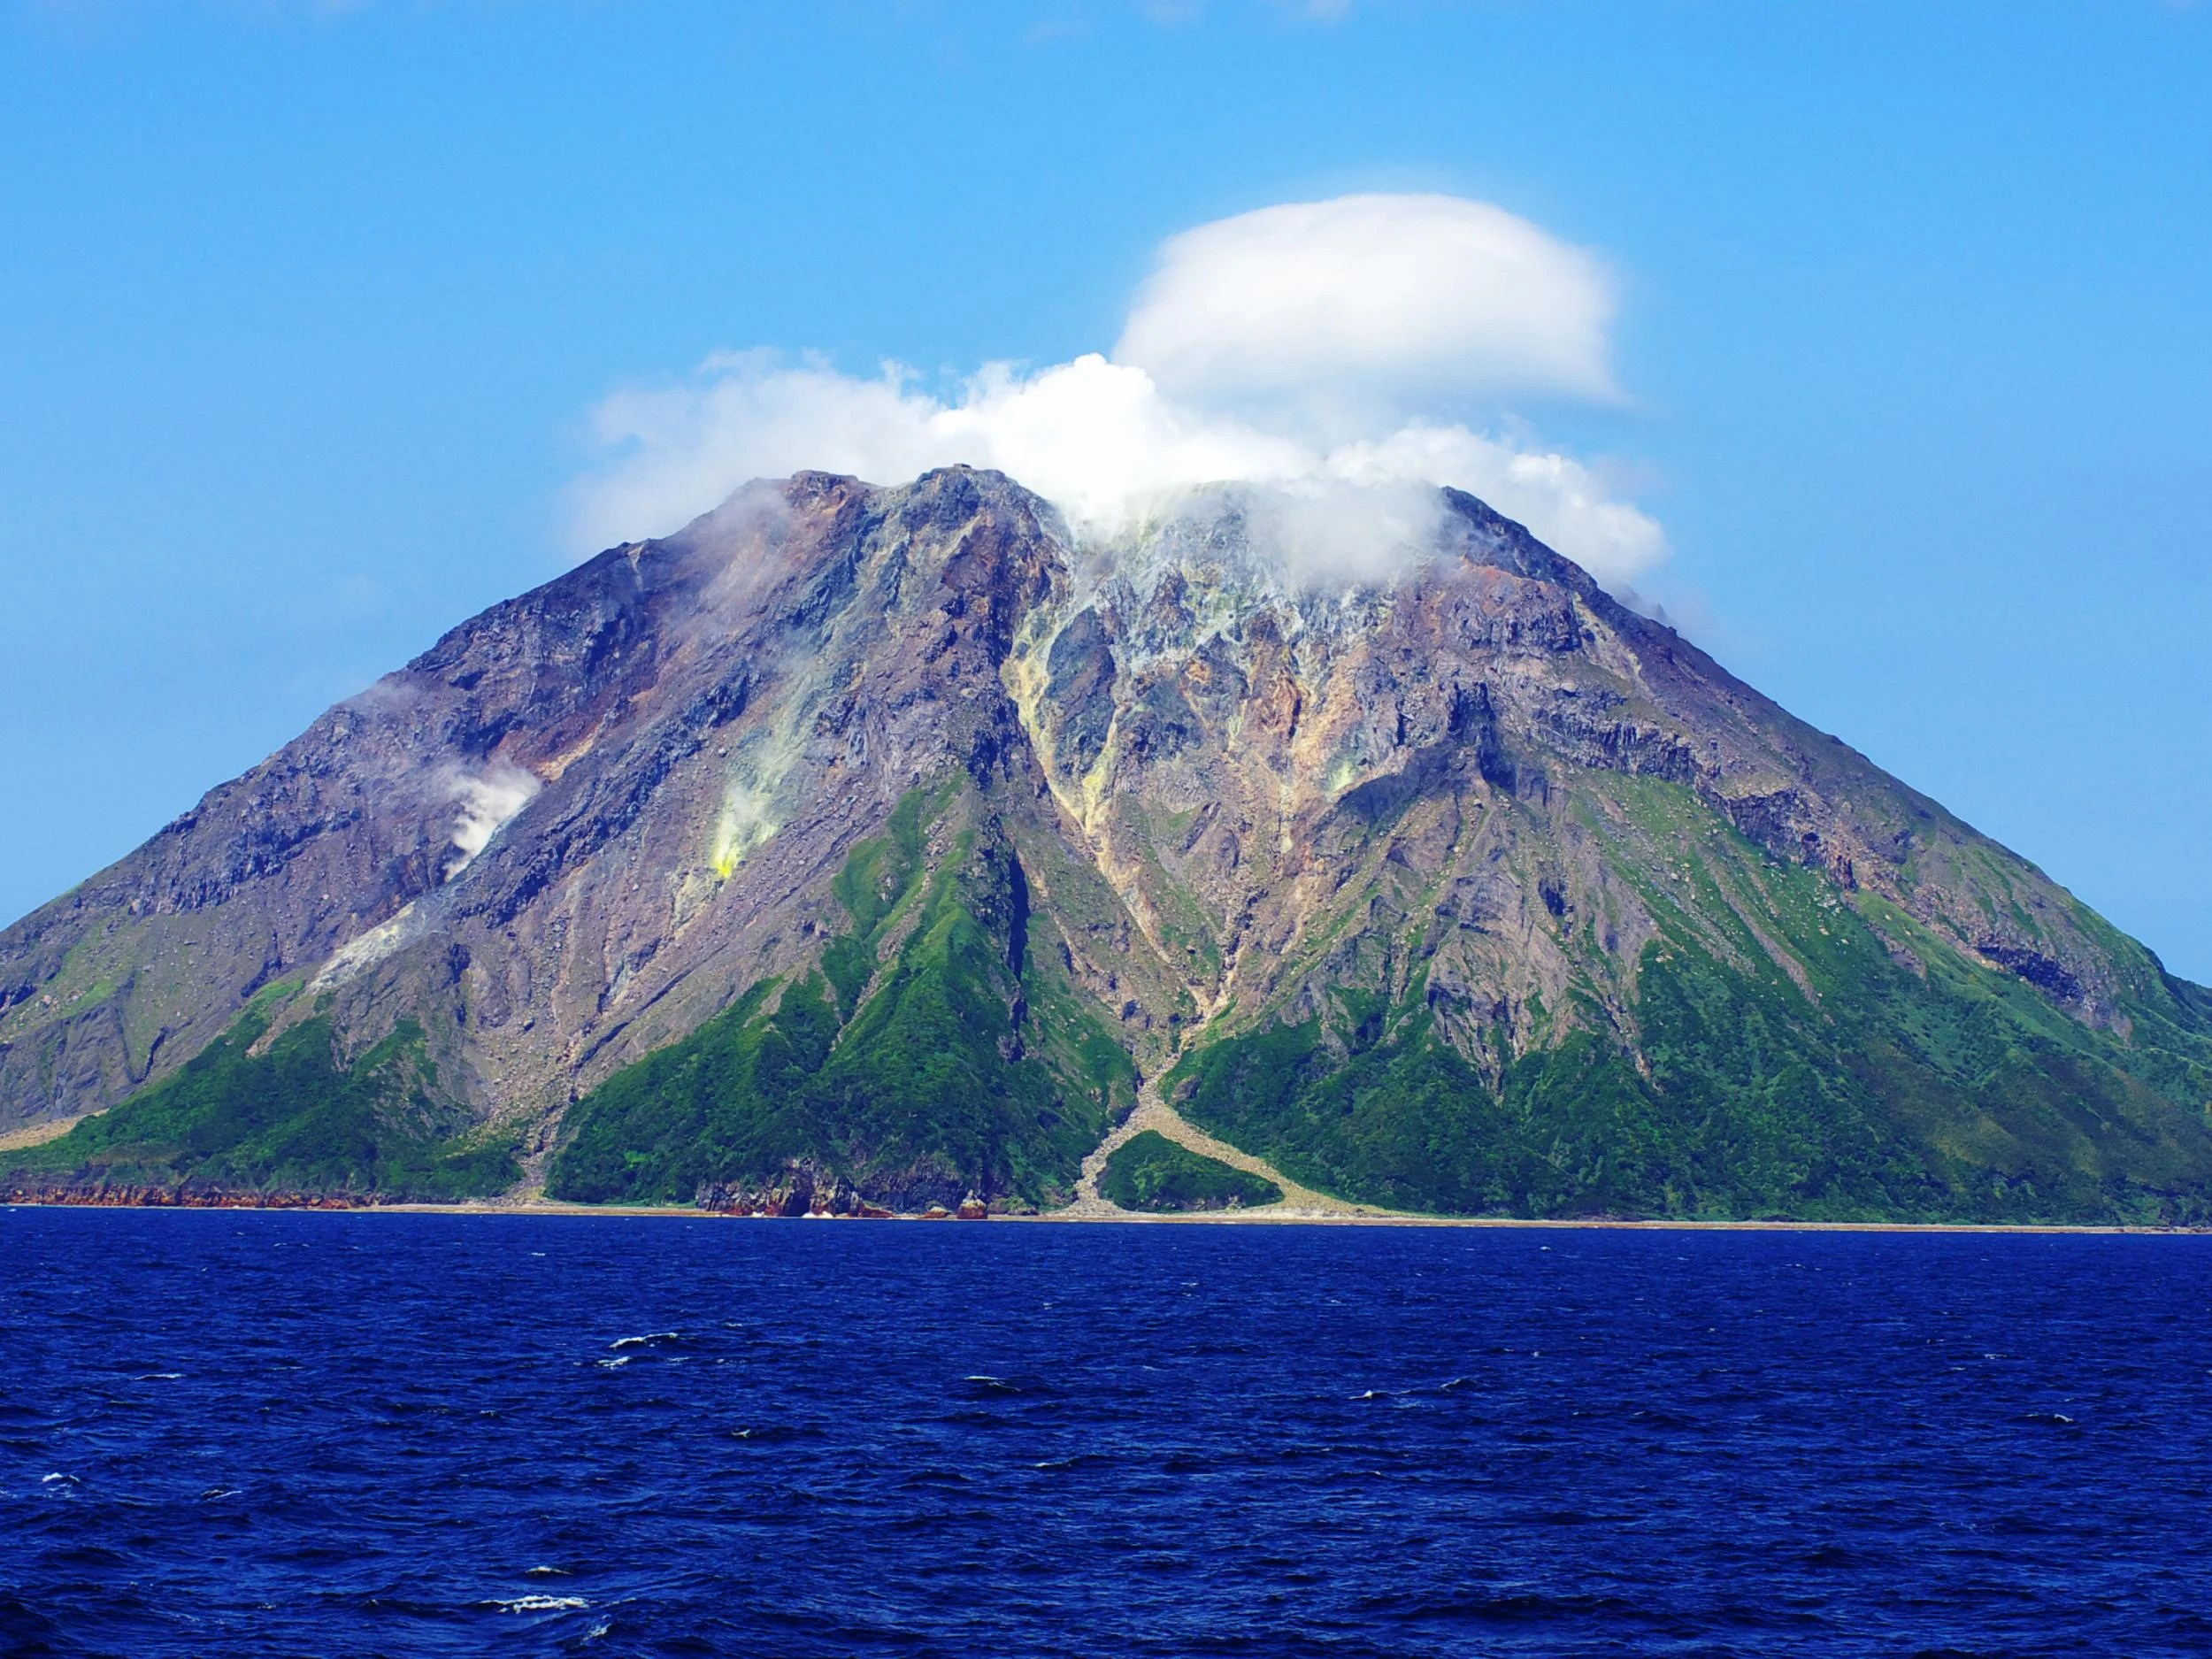 Giant Lava Dome Discovered Growing Inside Japanese